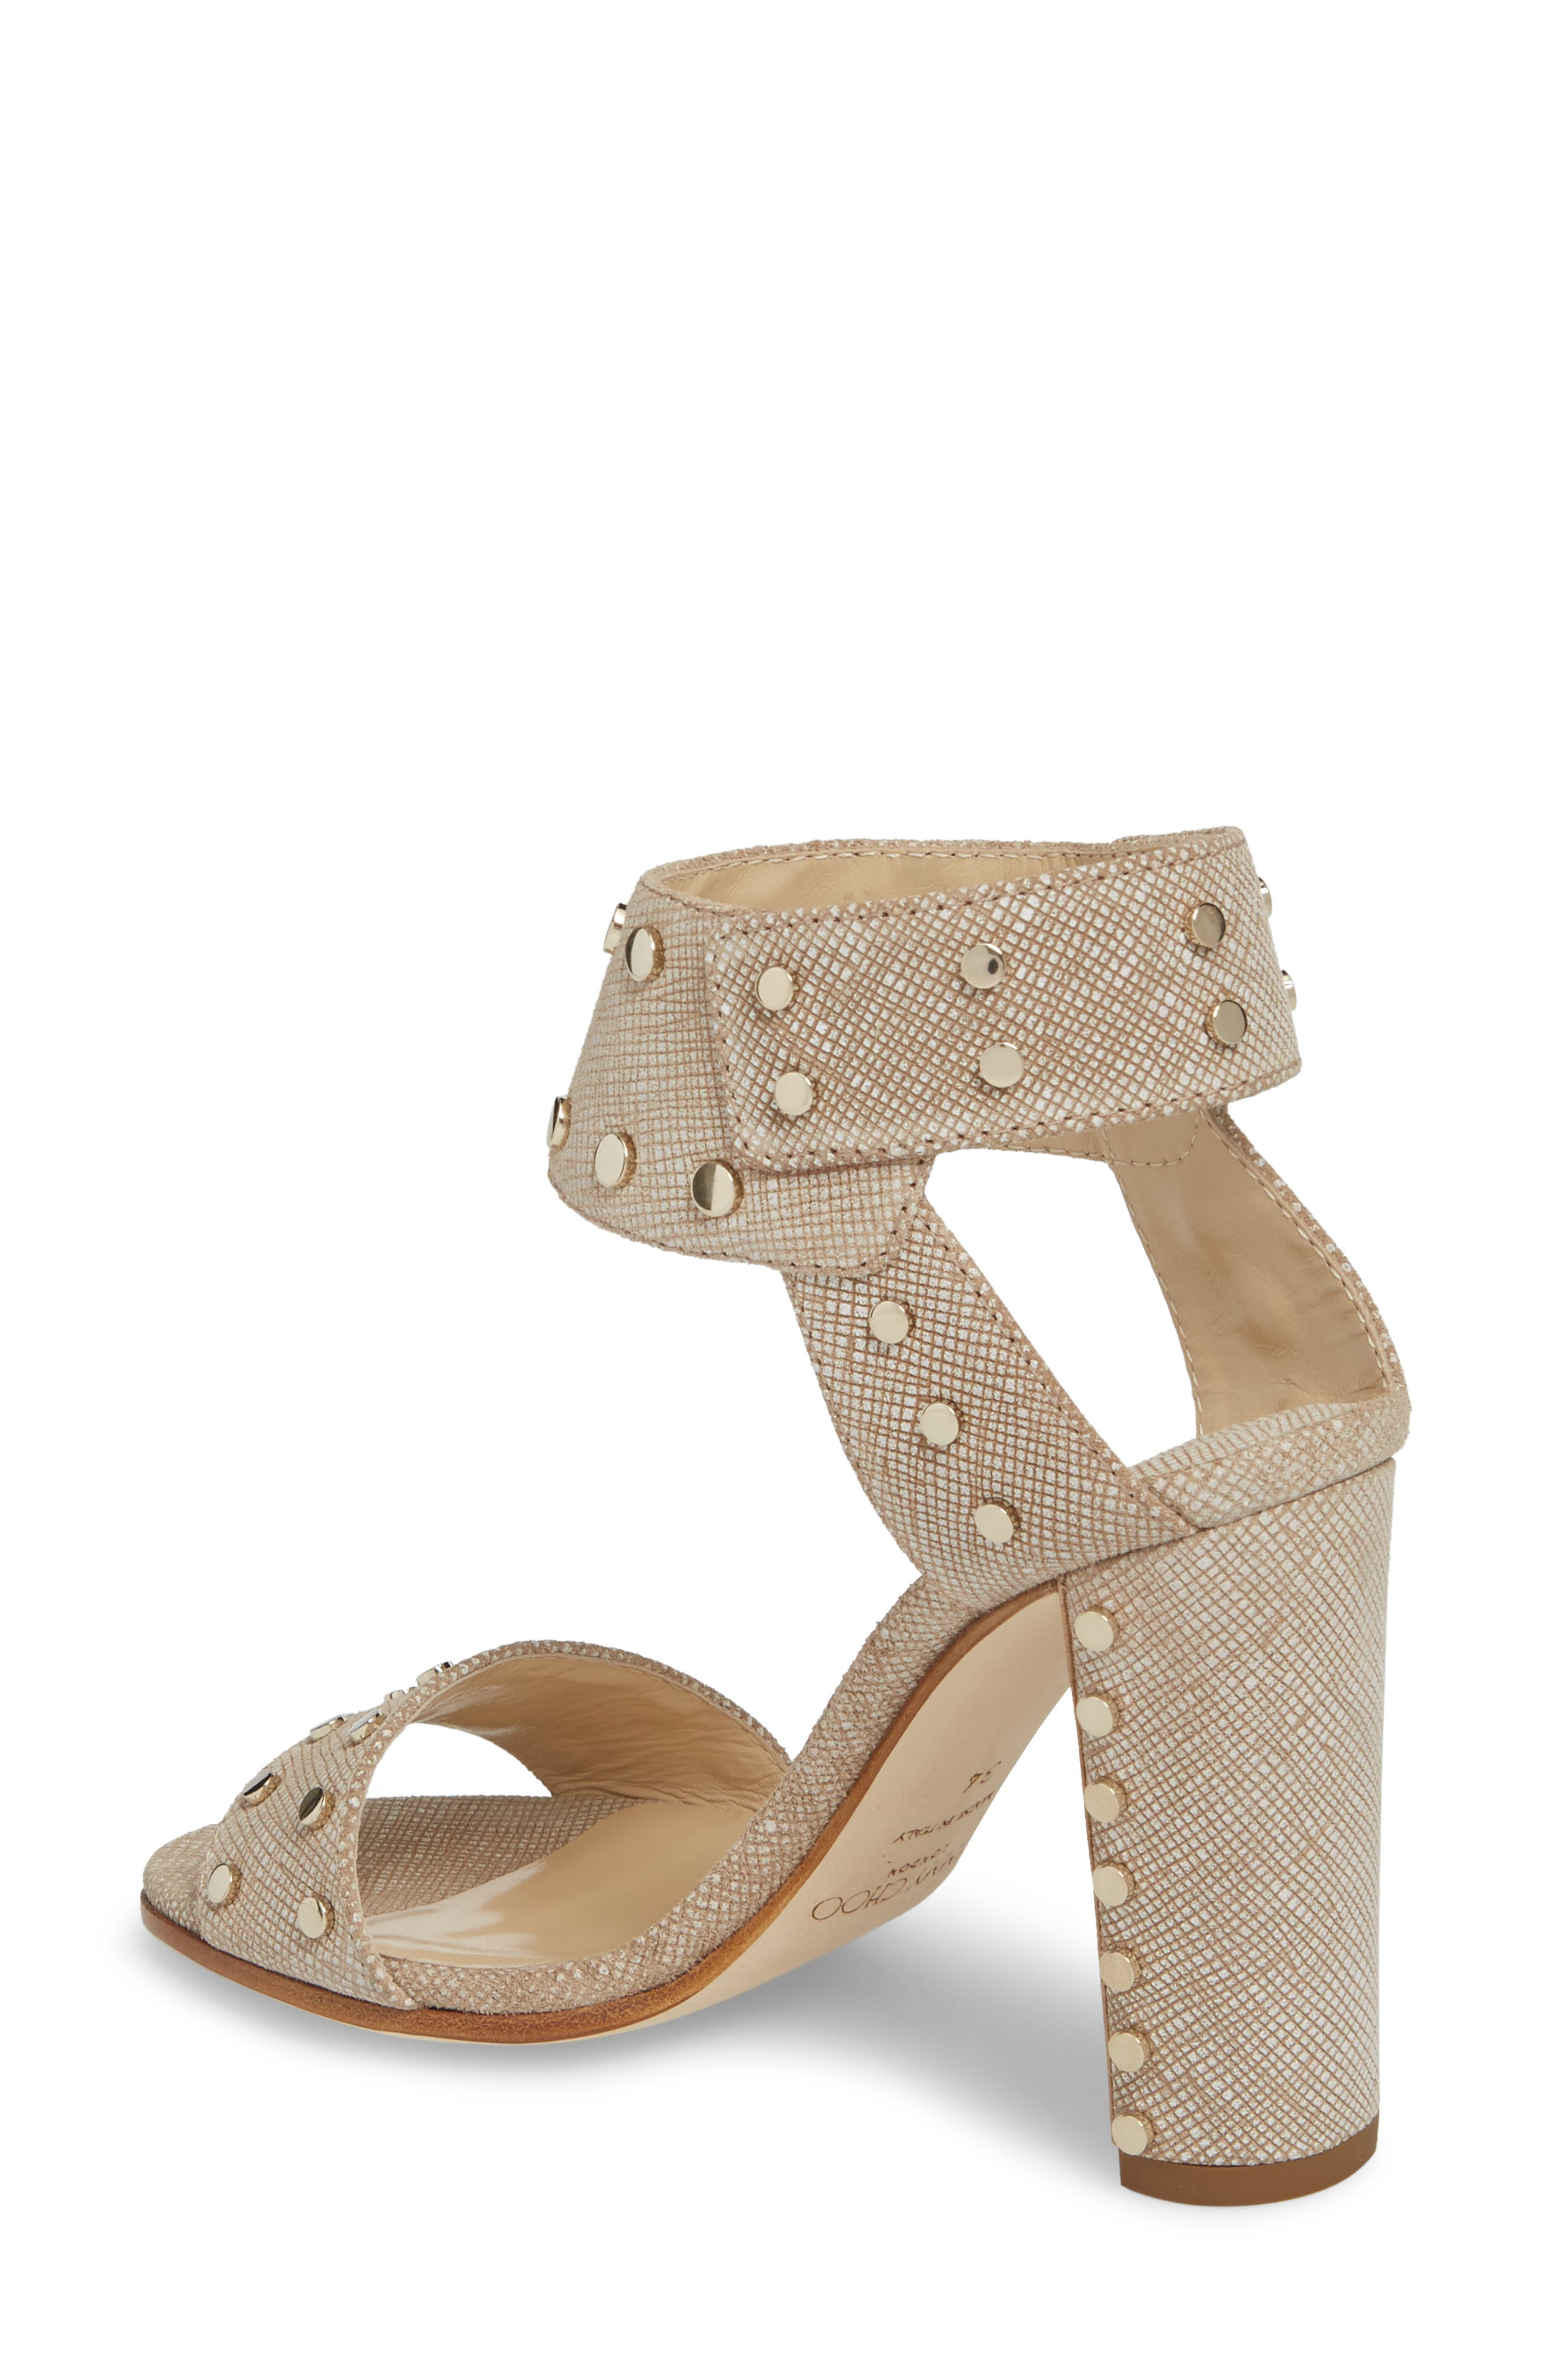 Veto Studded Ankle Cuff Sandal,                             Alternate thumbnail 2, color,                             Chai/ Gold